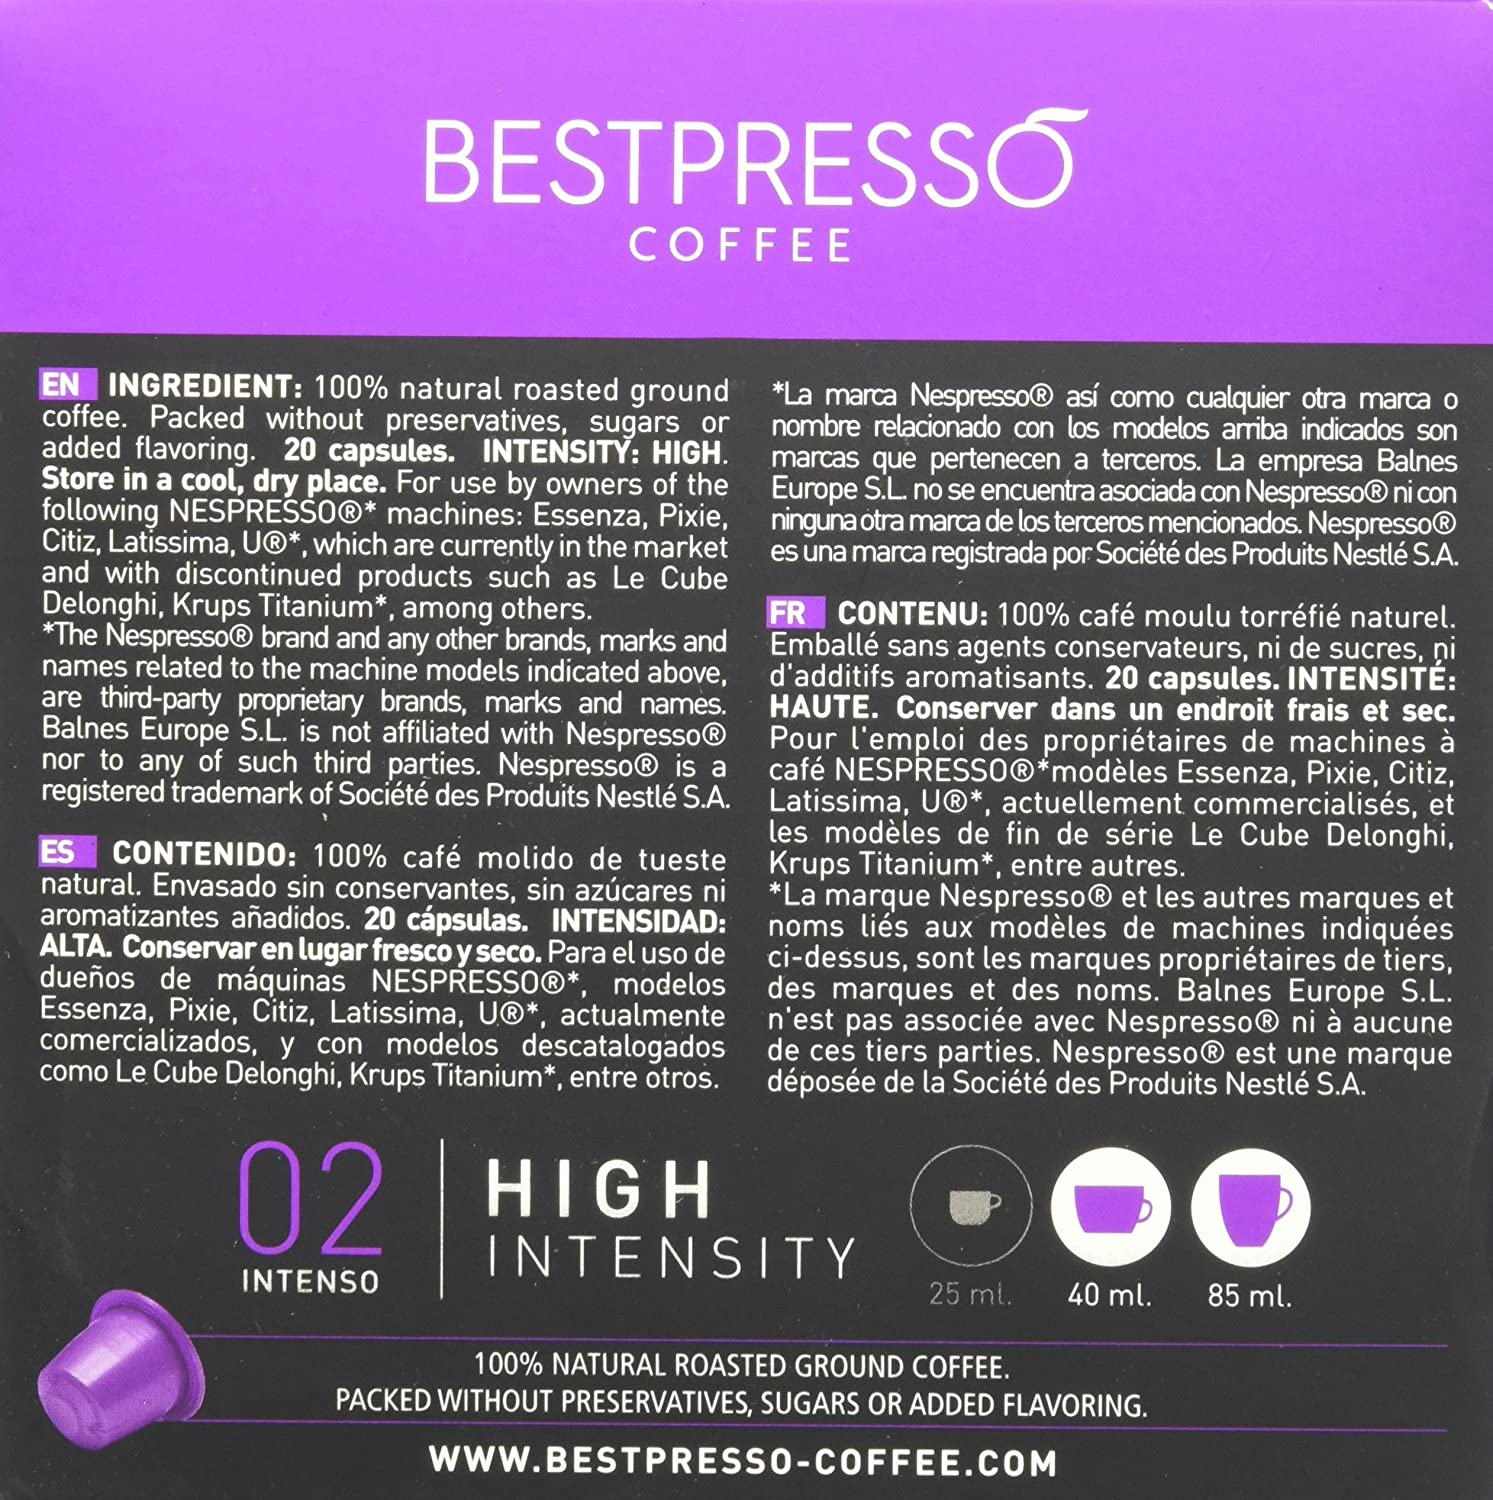 Amazon.com: 40 Bestpresso Nespresso Compatible Gourmet Coffee Capsules - Nespresso Pods Alternative: Intenso Blend Natural Espresso Flavor (High Intensity) ...